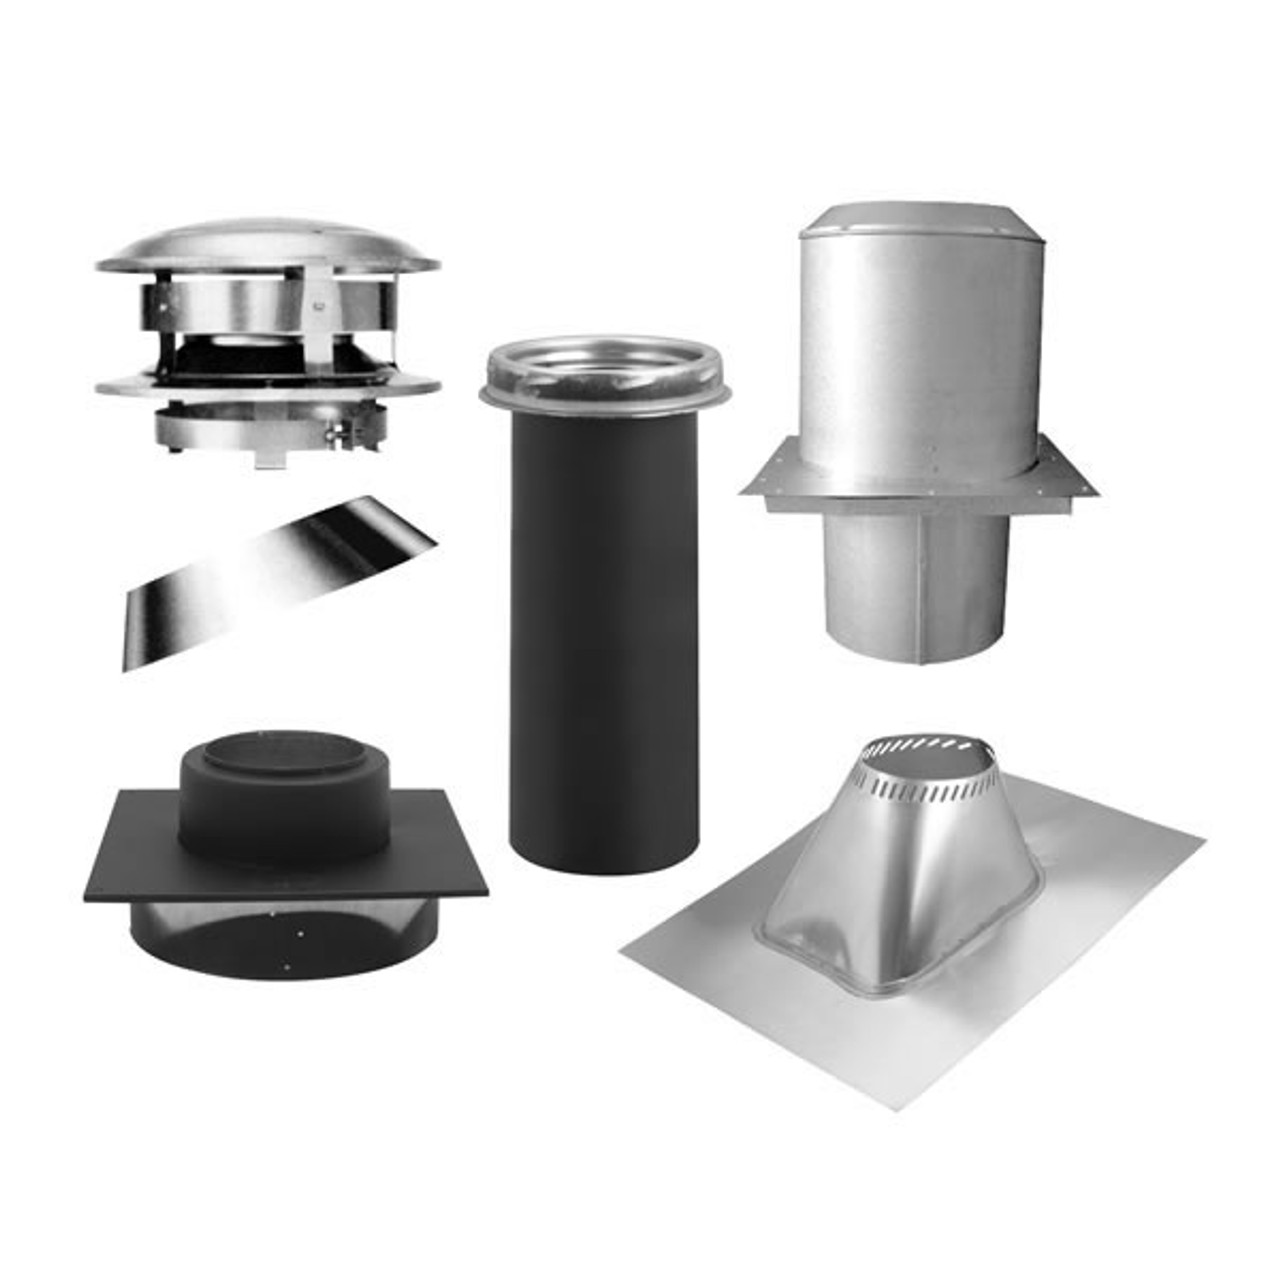 "Selkirk Metalbestos 6"" Flat ceiling Support Kit"